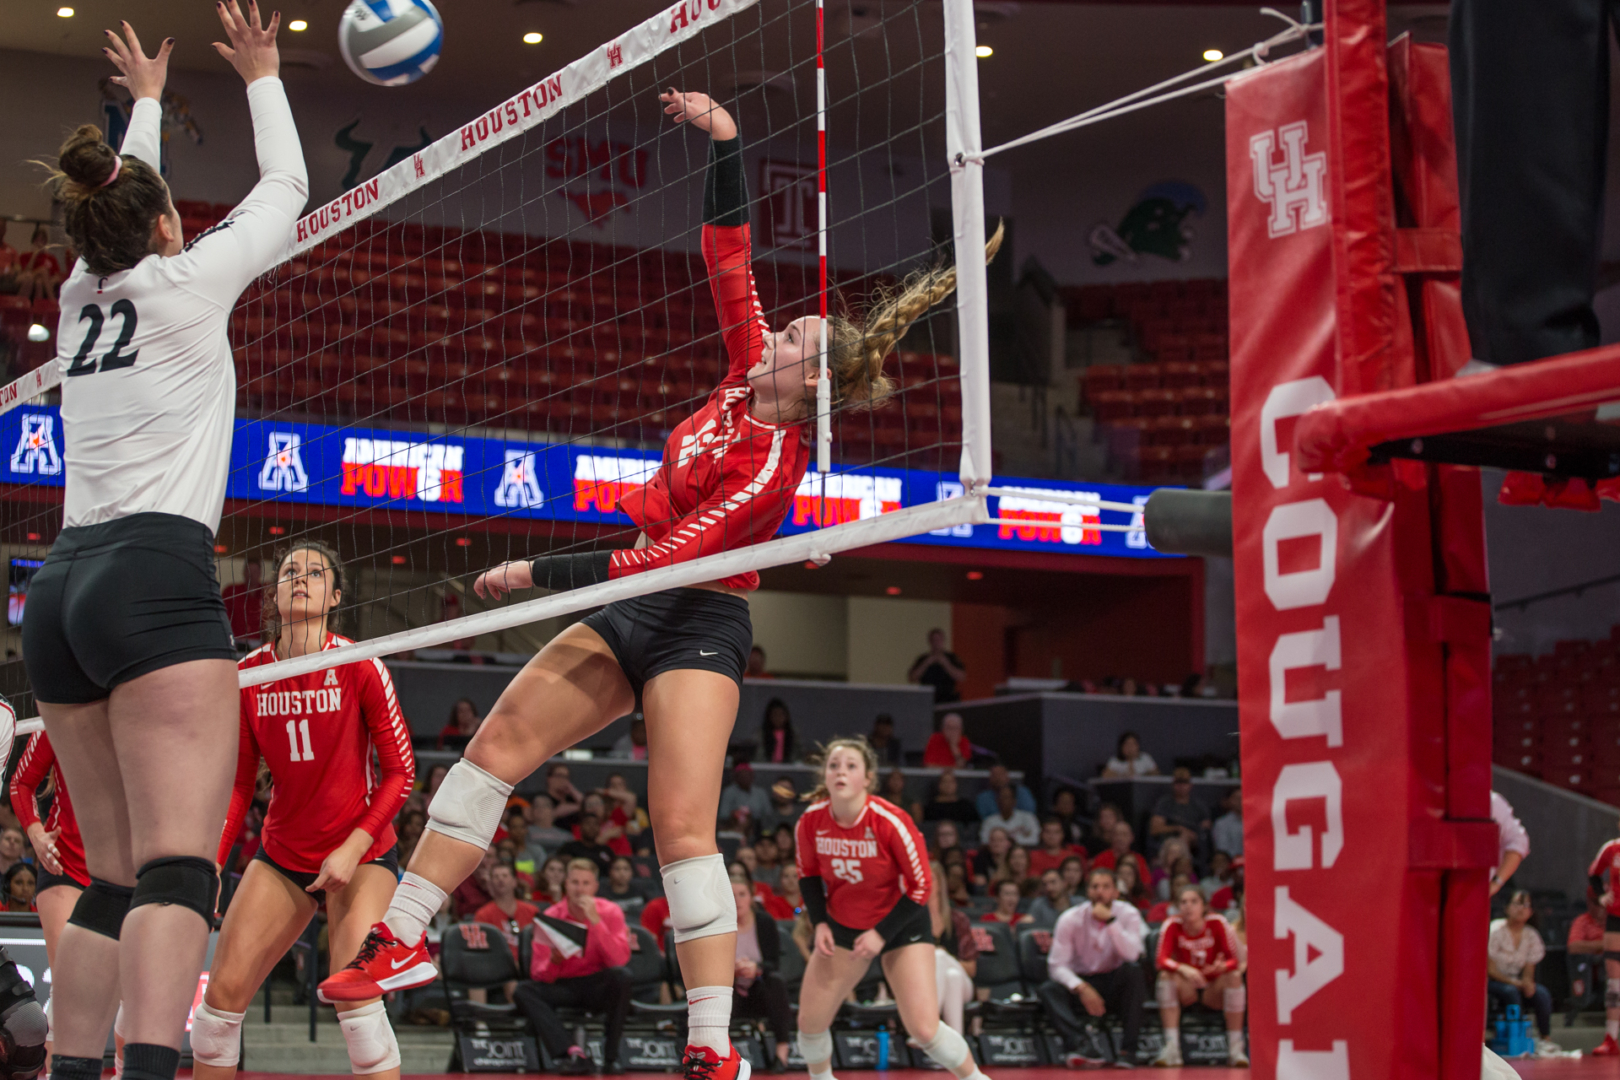 Cougars beat Wichita State in a three-set sweep on Sunday. This followed a loss against Tulsa, which ended Houston's conference win streak.   Trevor Nolley/The Cougar